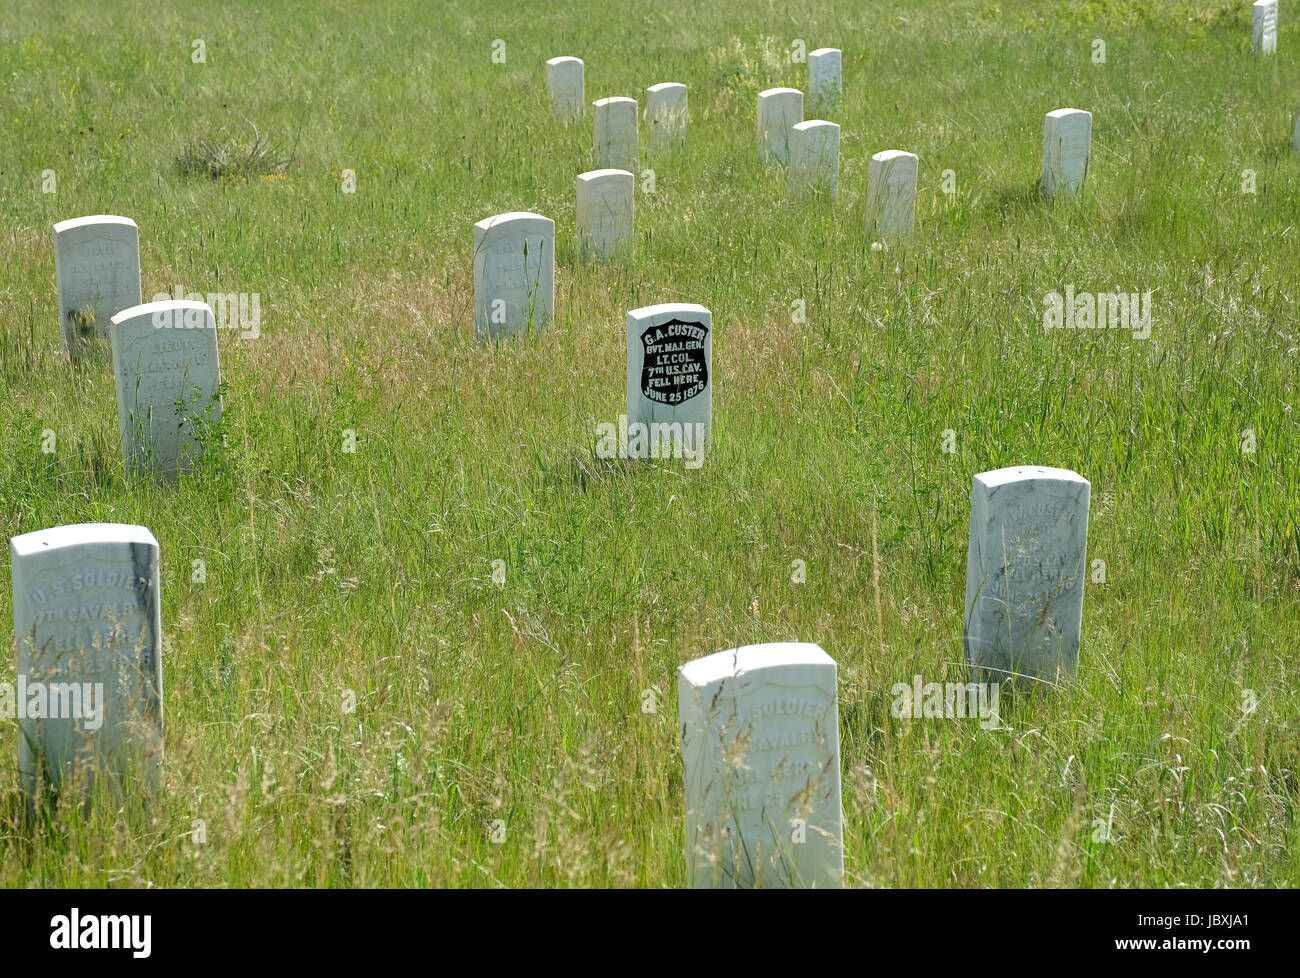 A head stone (black) marks the spot where General George Custer fell at Last Stand Hill during the Battle of Little Bighorn, Montana on July 25 1876. Stock Photo